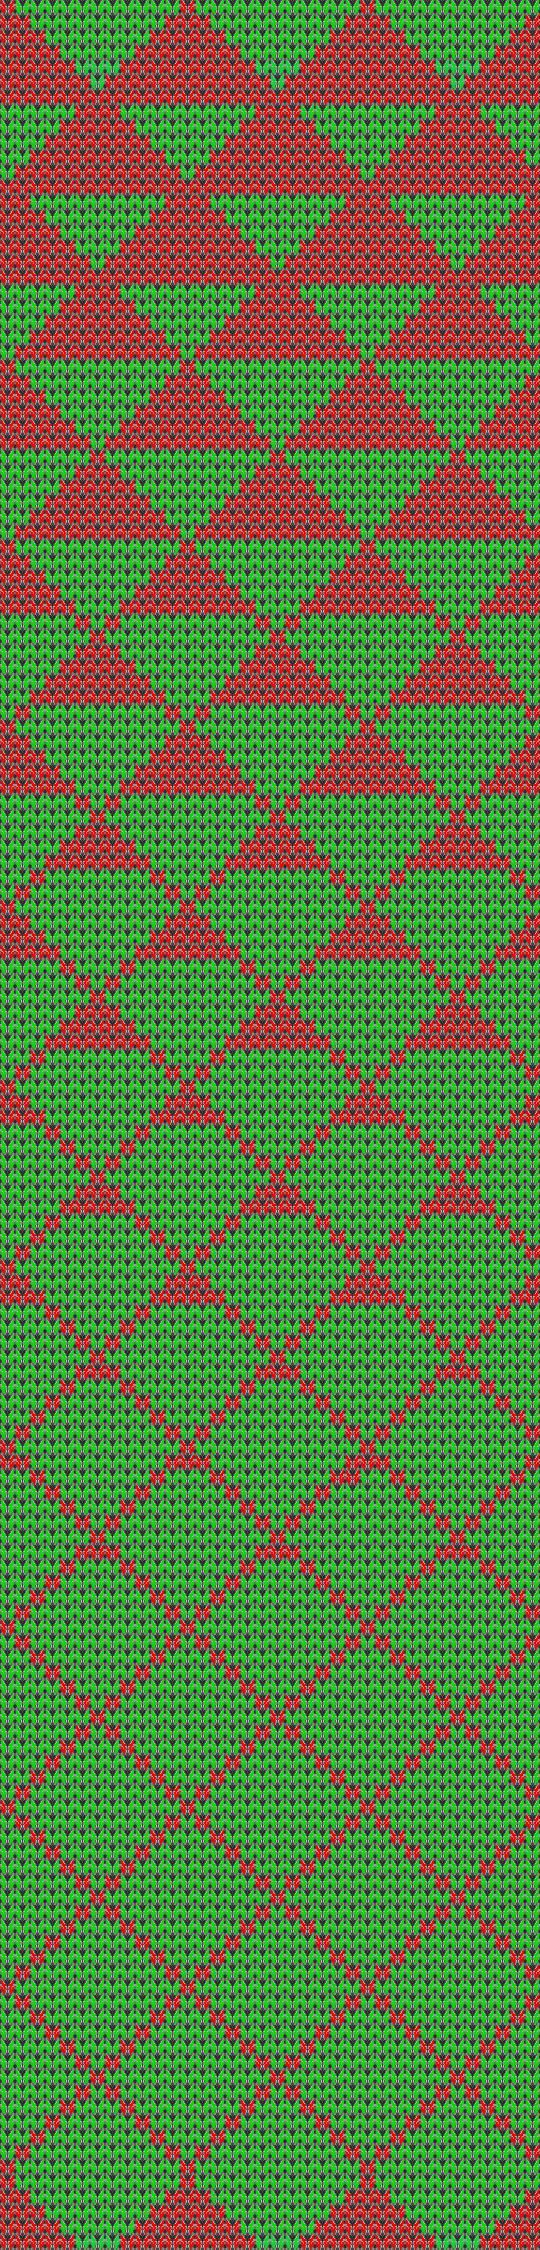 This would be great in double knitting - wonder if I could work it as a mosaic?